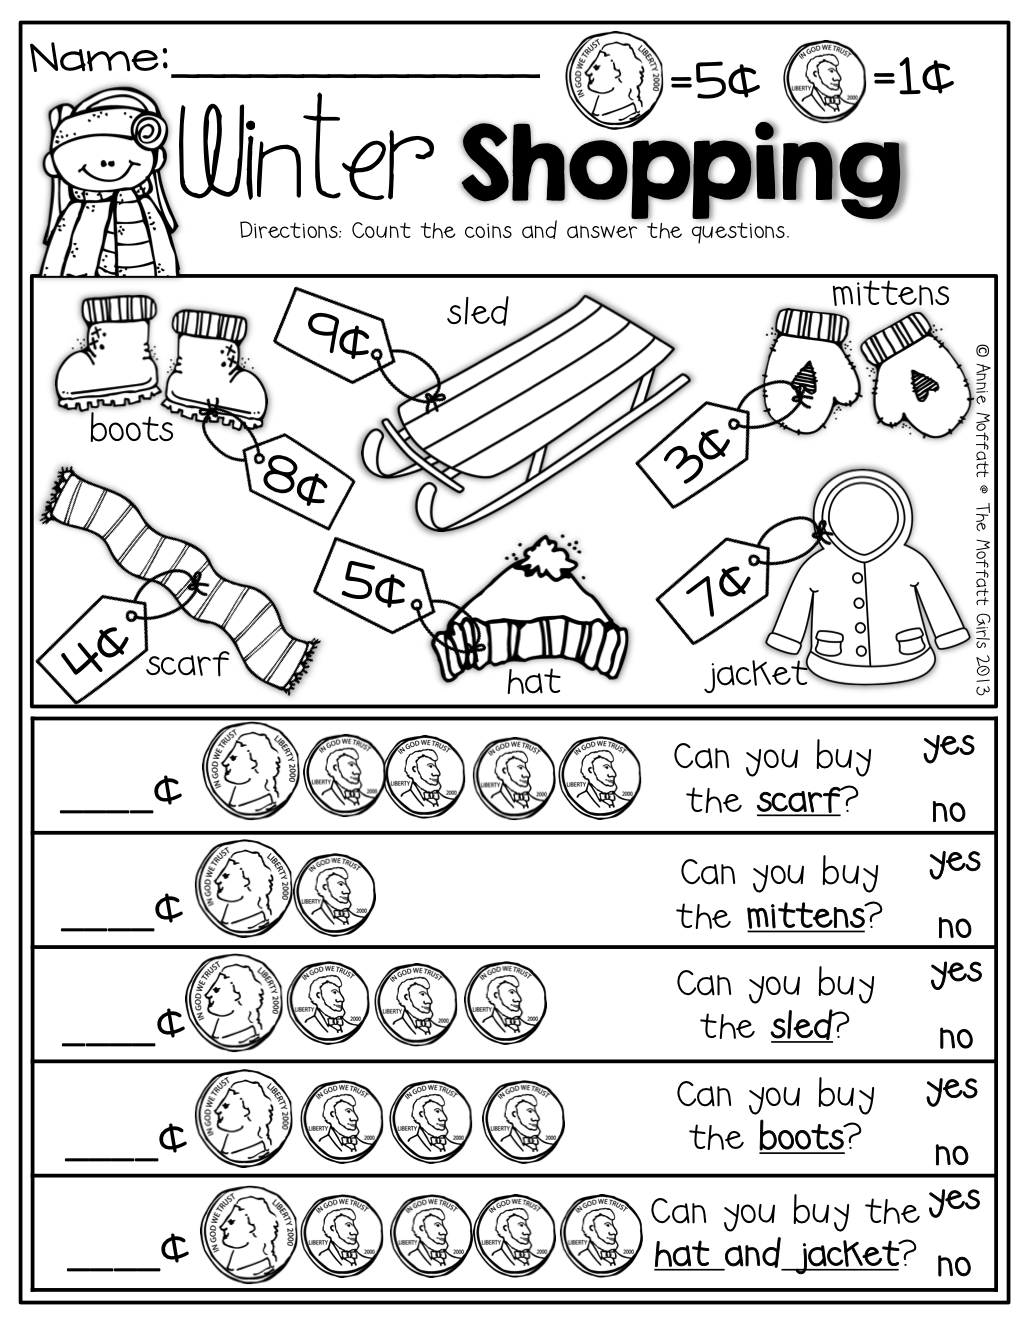 Winter Shopping With Nickels And Pennies Prefect For Adding Up To 10 And Comparing Numbers